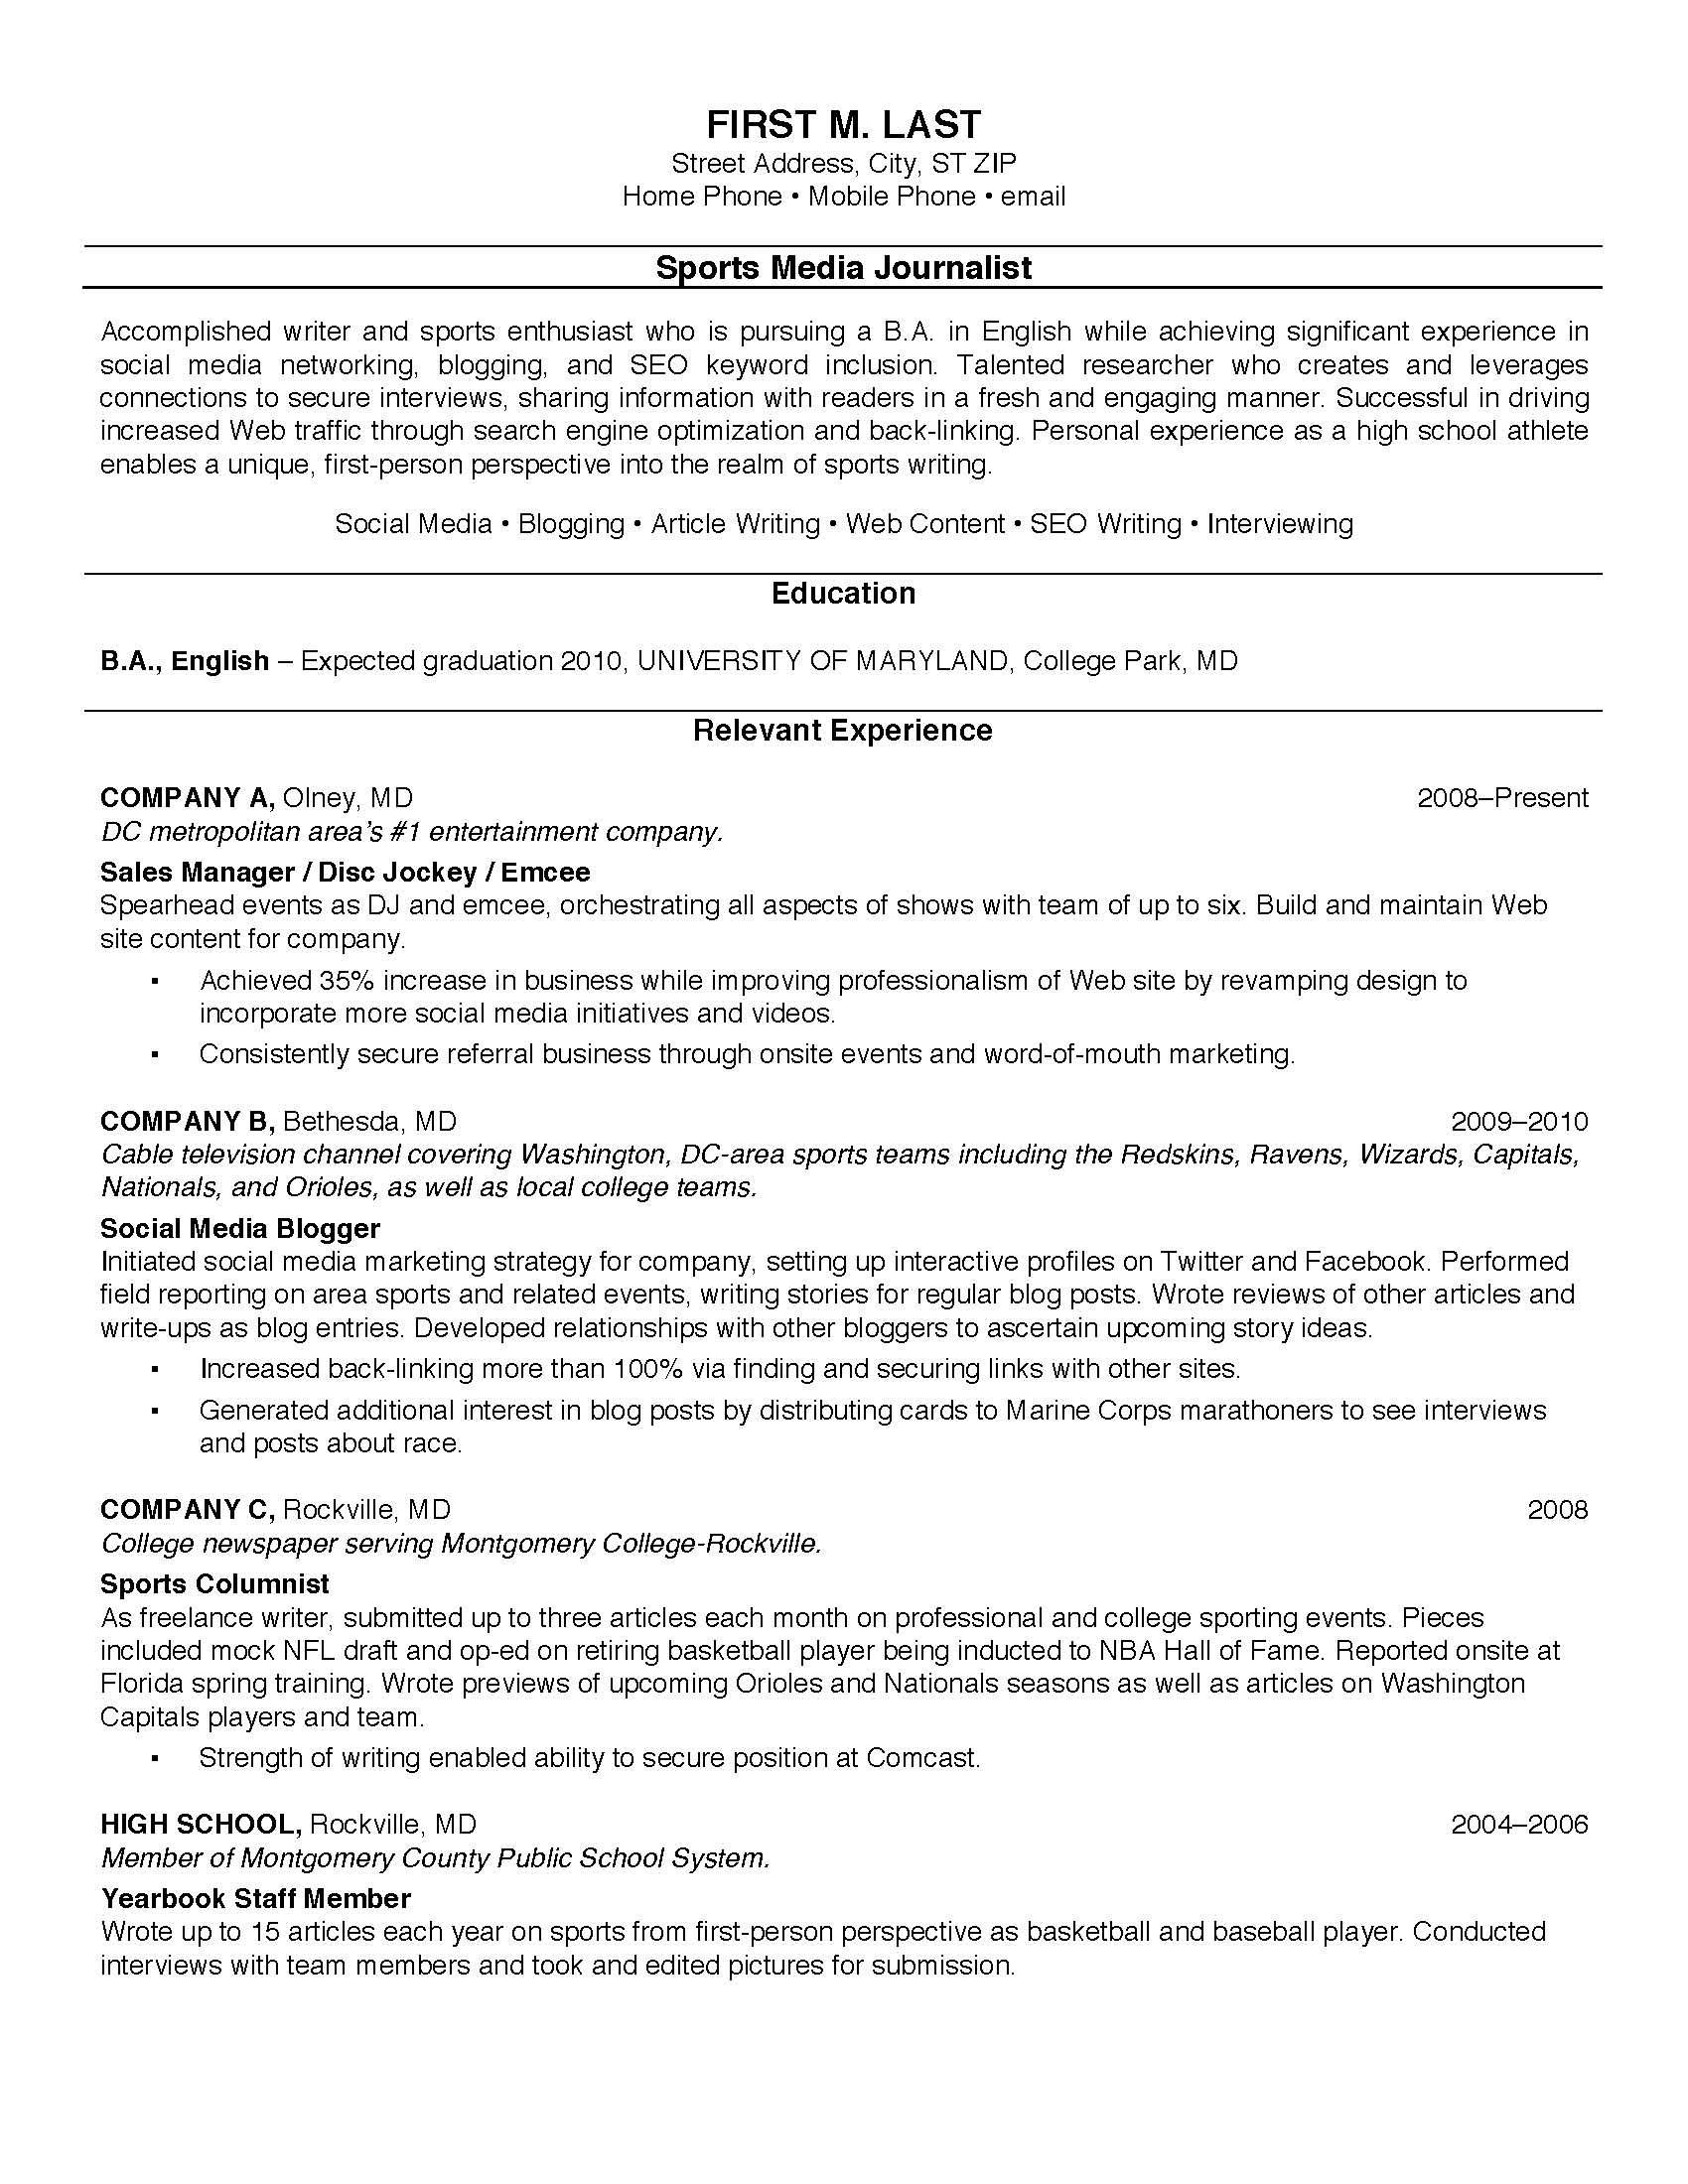 Resume Format College Student Job Resume Examples Student